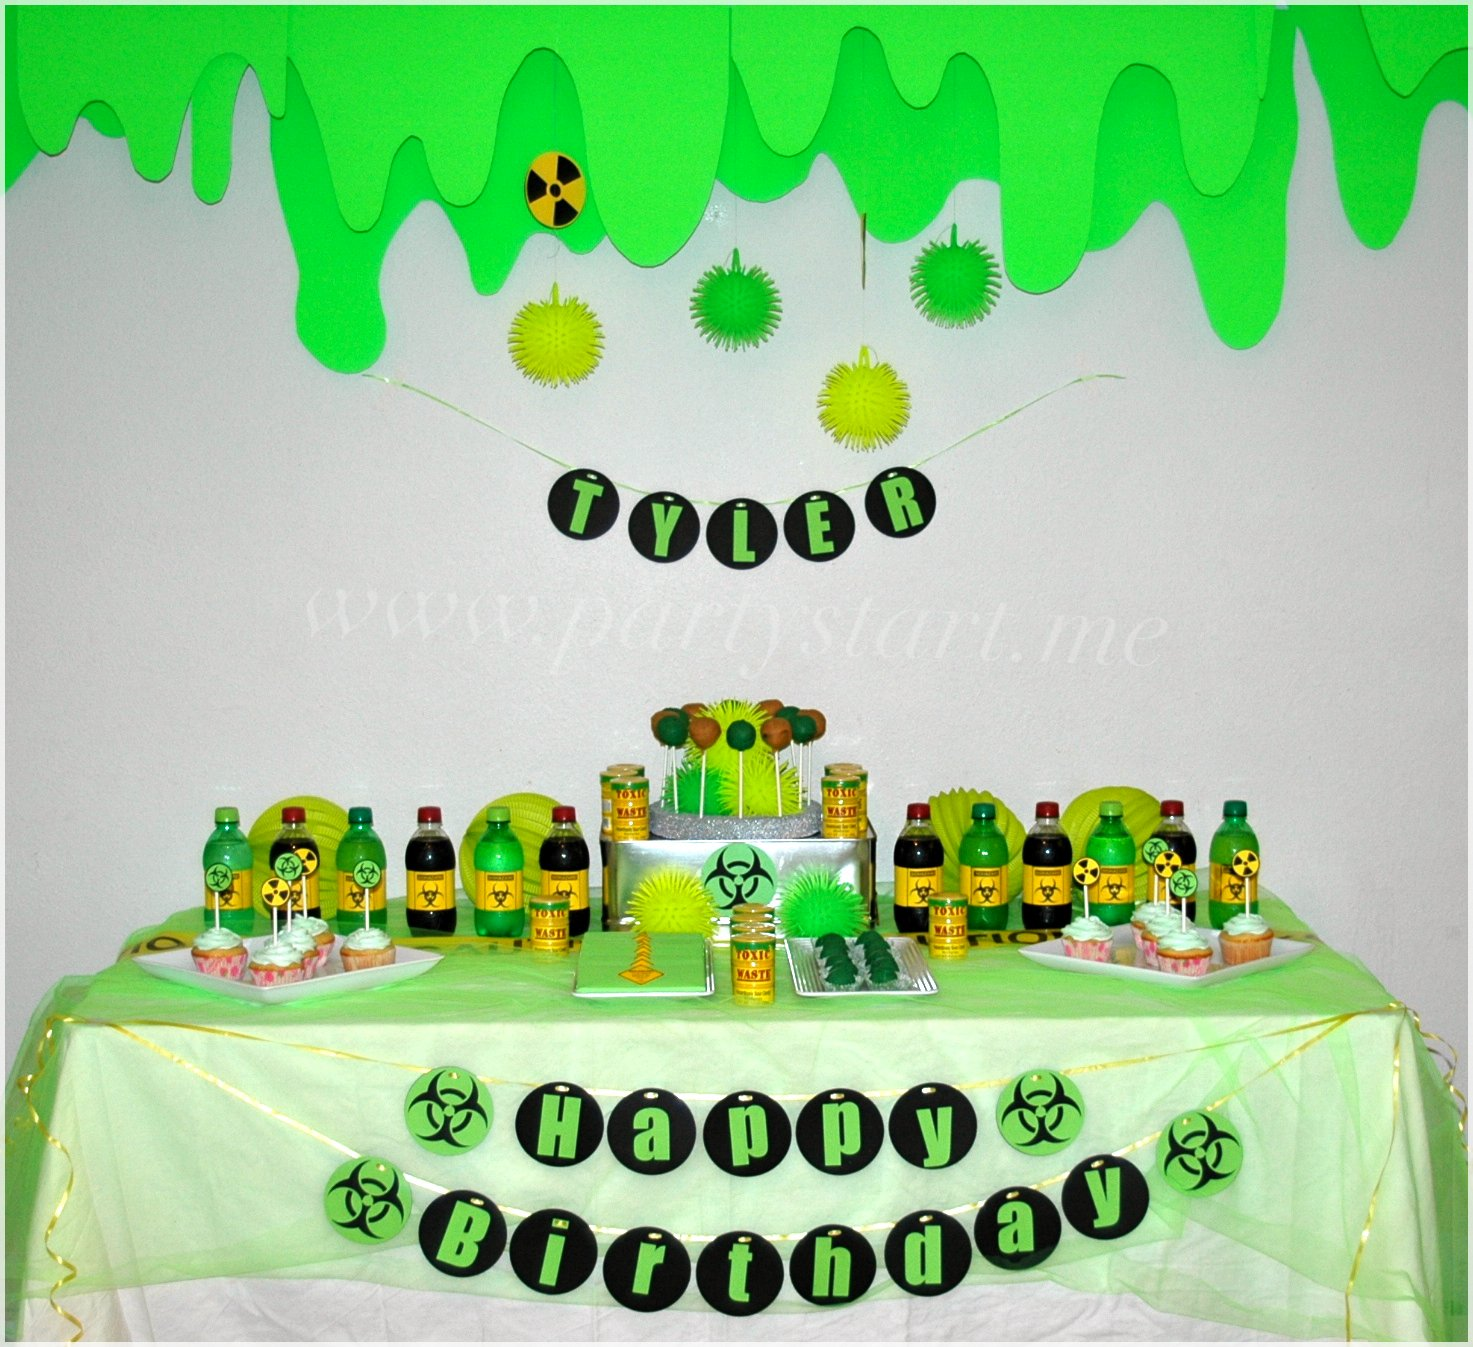 good looking ideas for 10 year old birthday party at home. Pamela Smerker Designs Hazardous Teen Birthday Real Party  crafts for 10 year olds Generous Ideas For Year Old Boys At Home Pictures